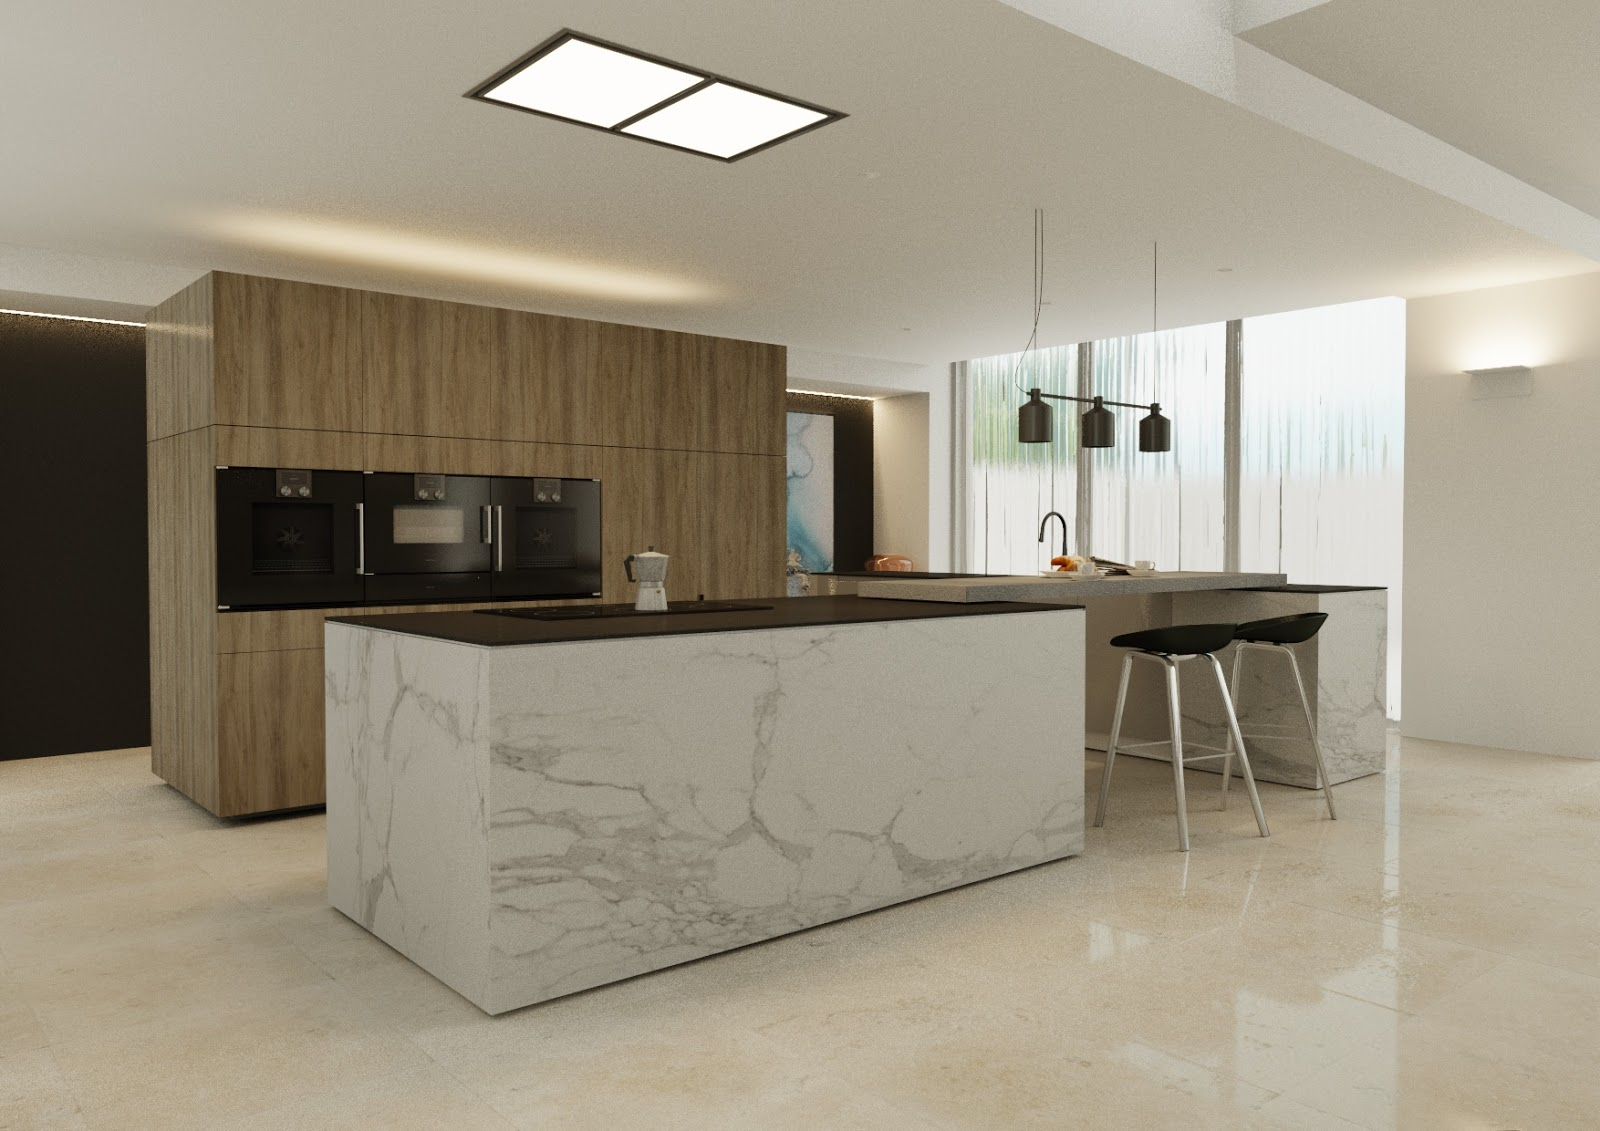 Minosa: Modern Kitchen Design requires & Contemporary approach